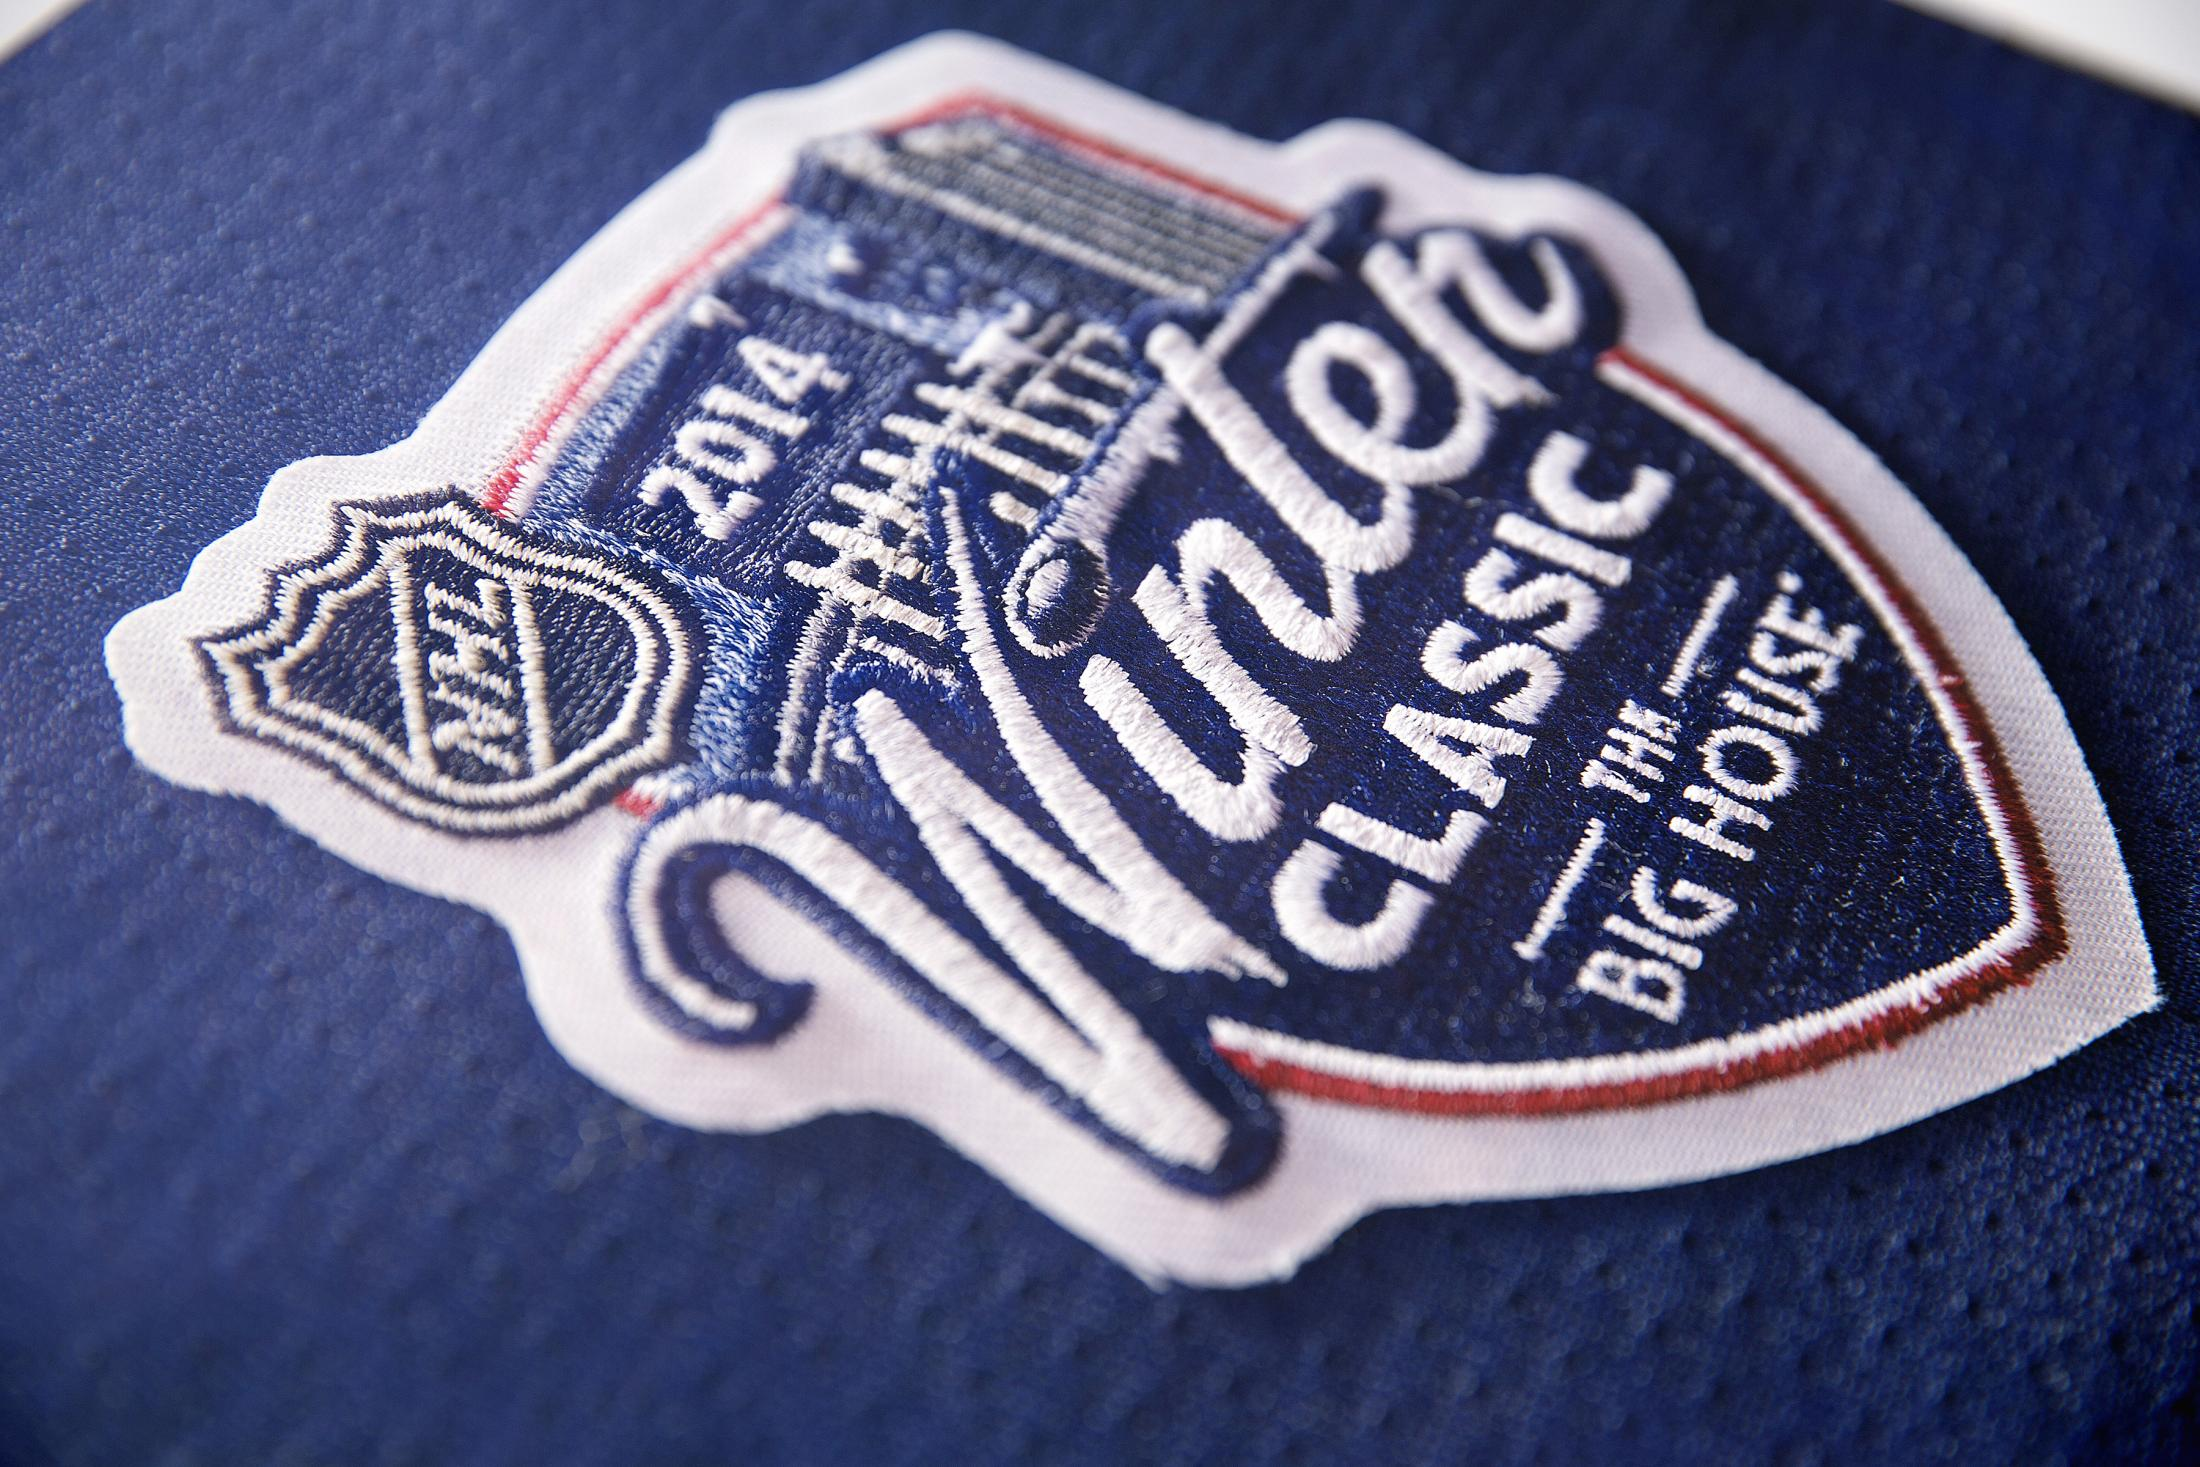 Thumbnail for Toronto Maple Leafs Winter Classic Jersey Package 81a709552